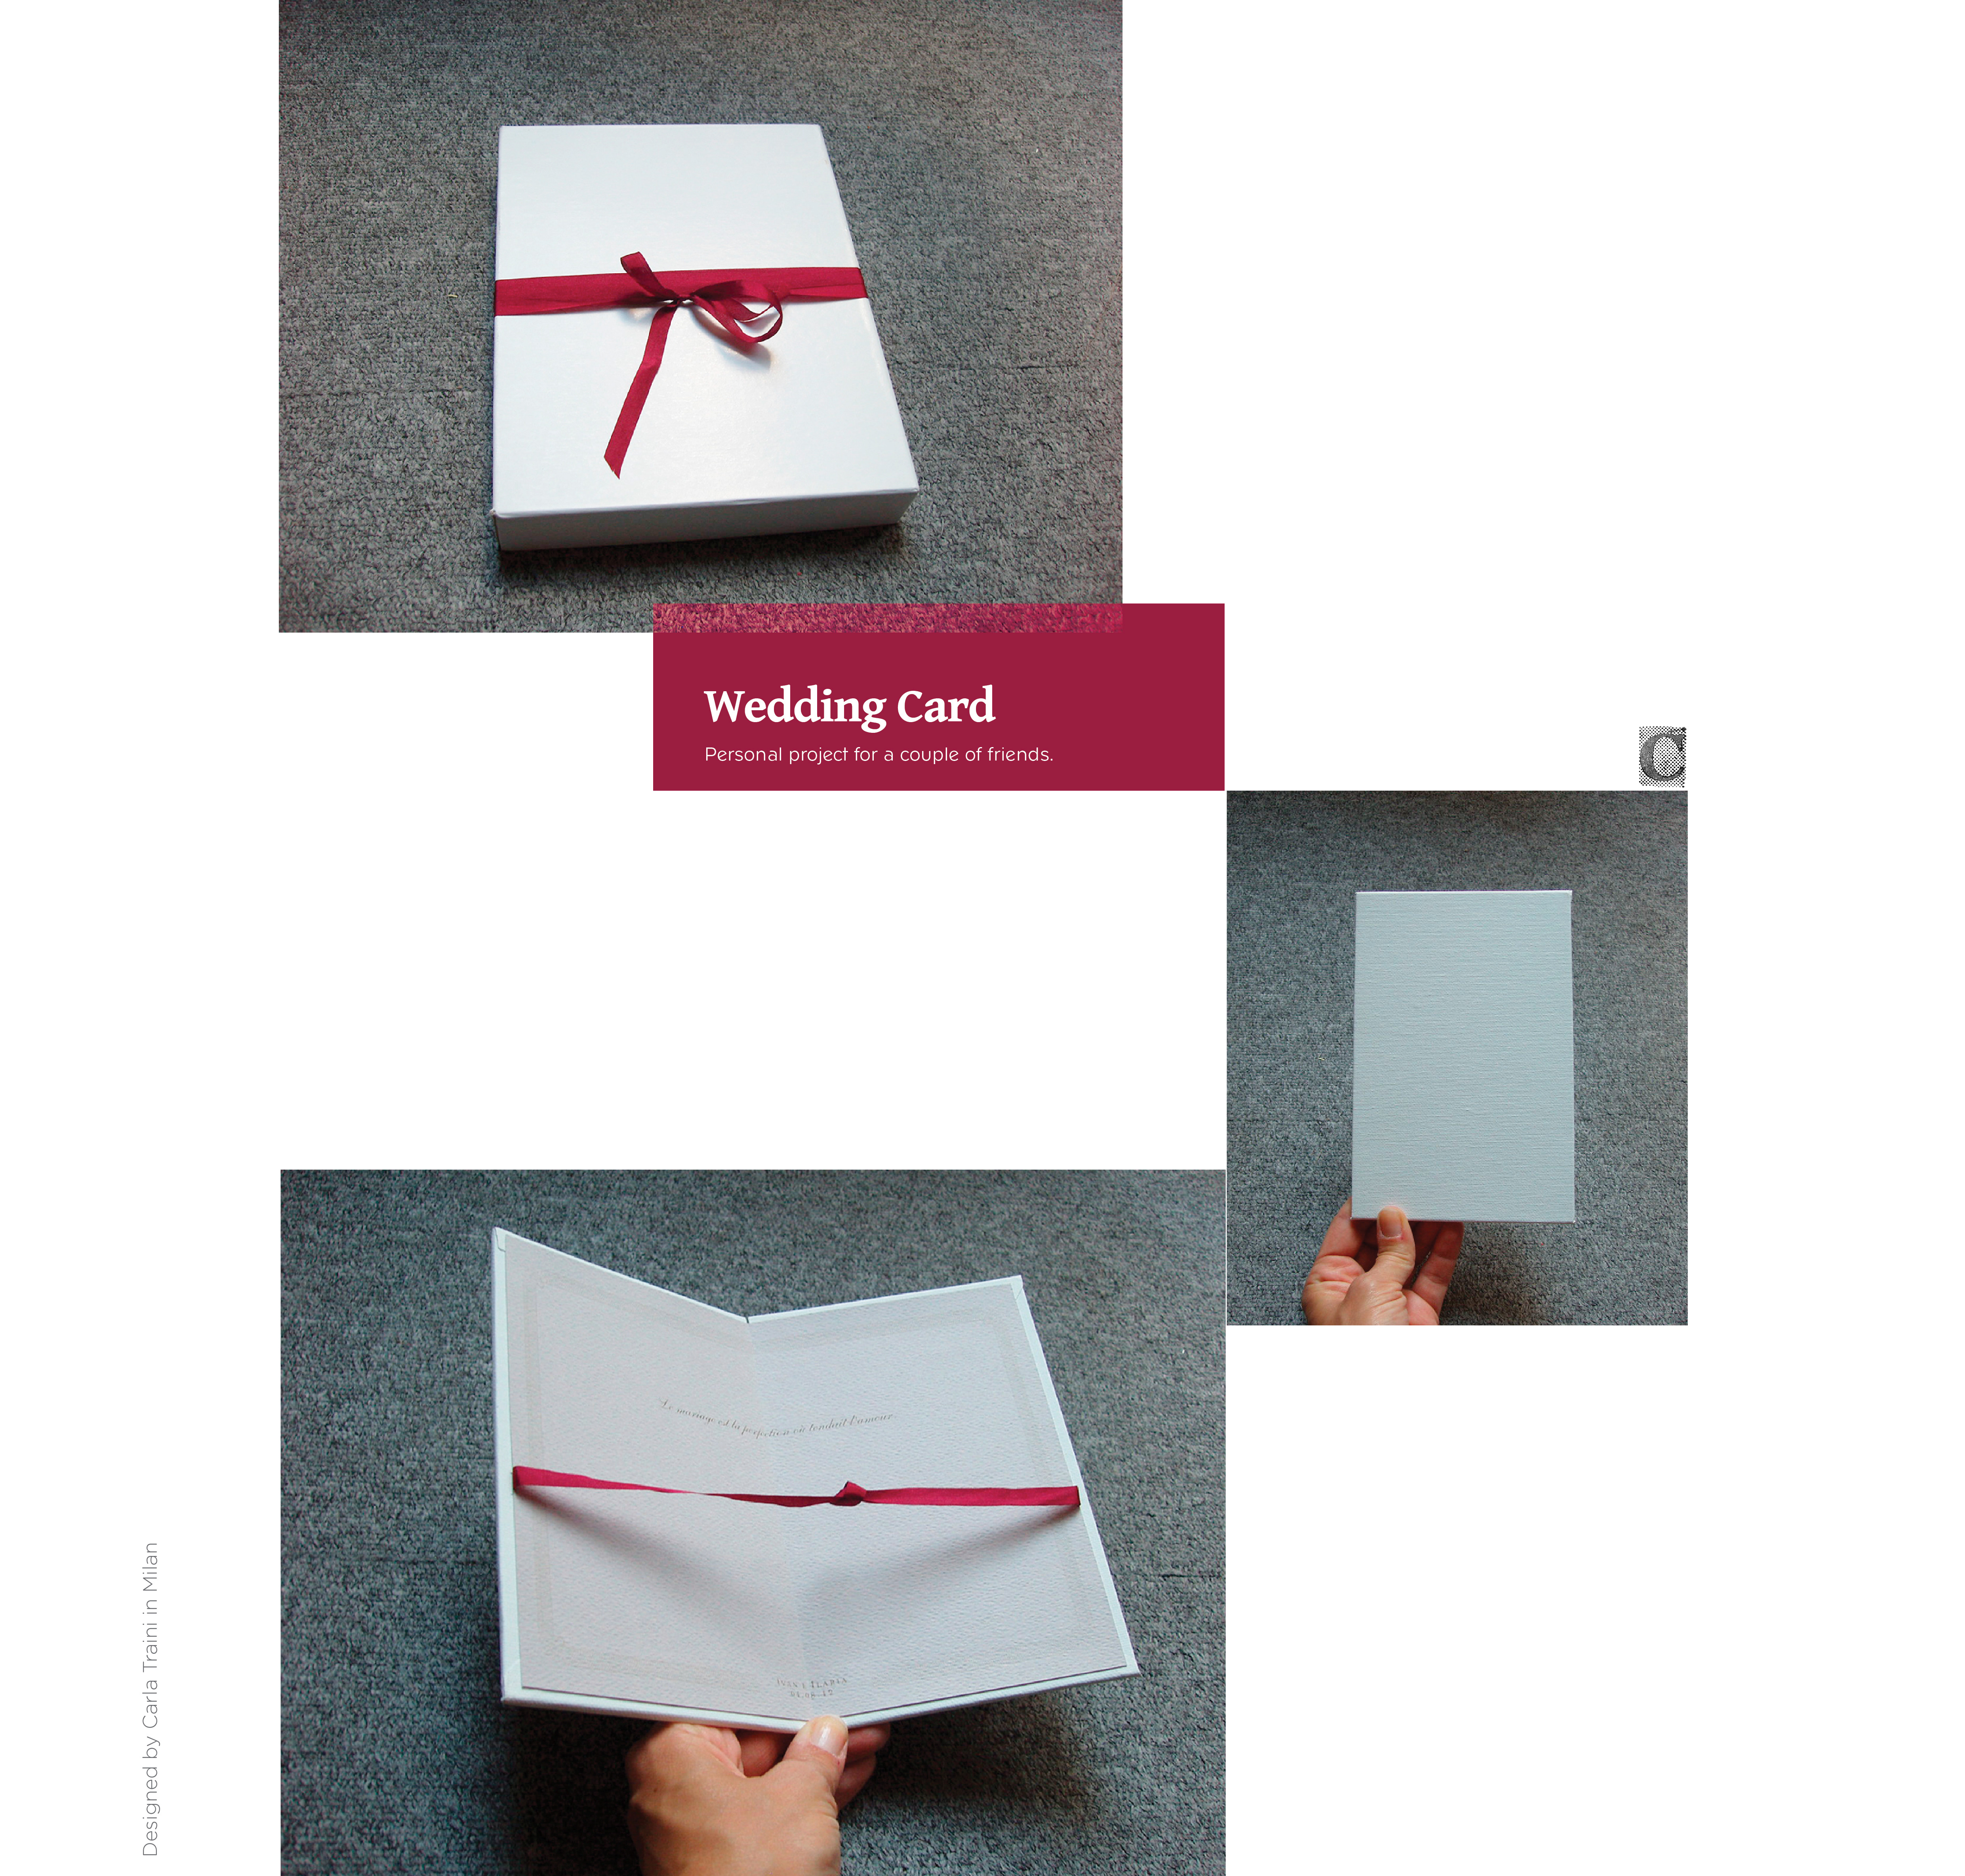 Wedding Card_Editorial